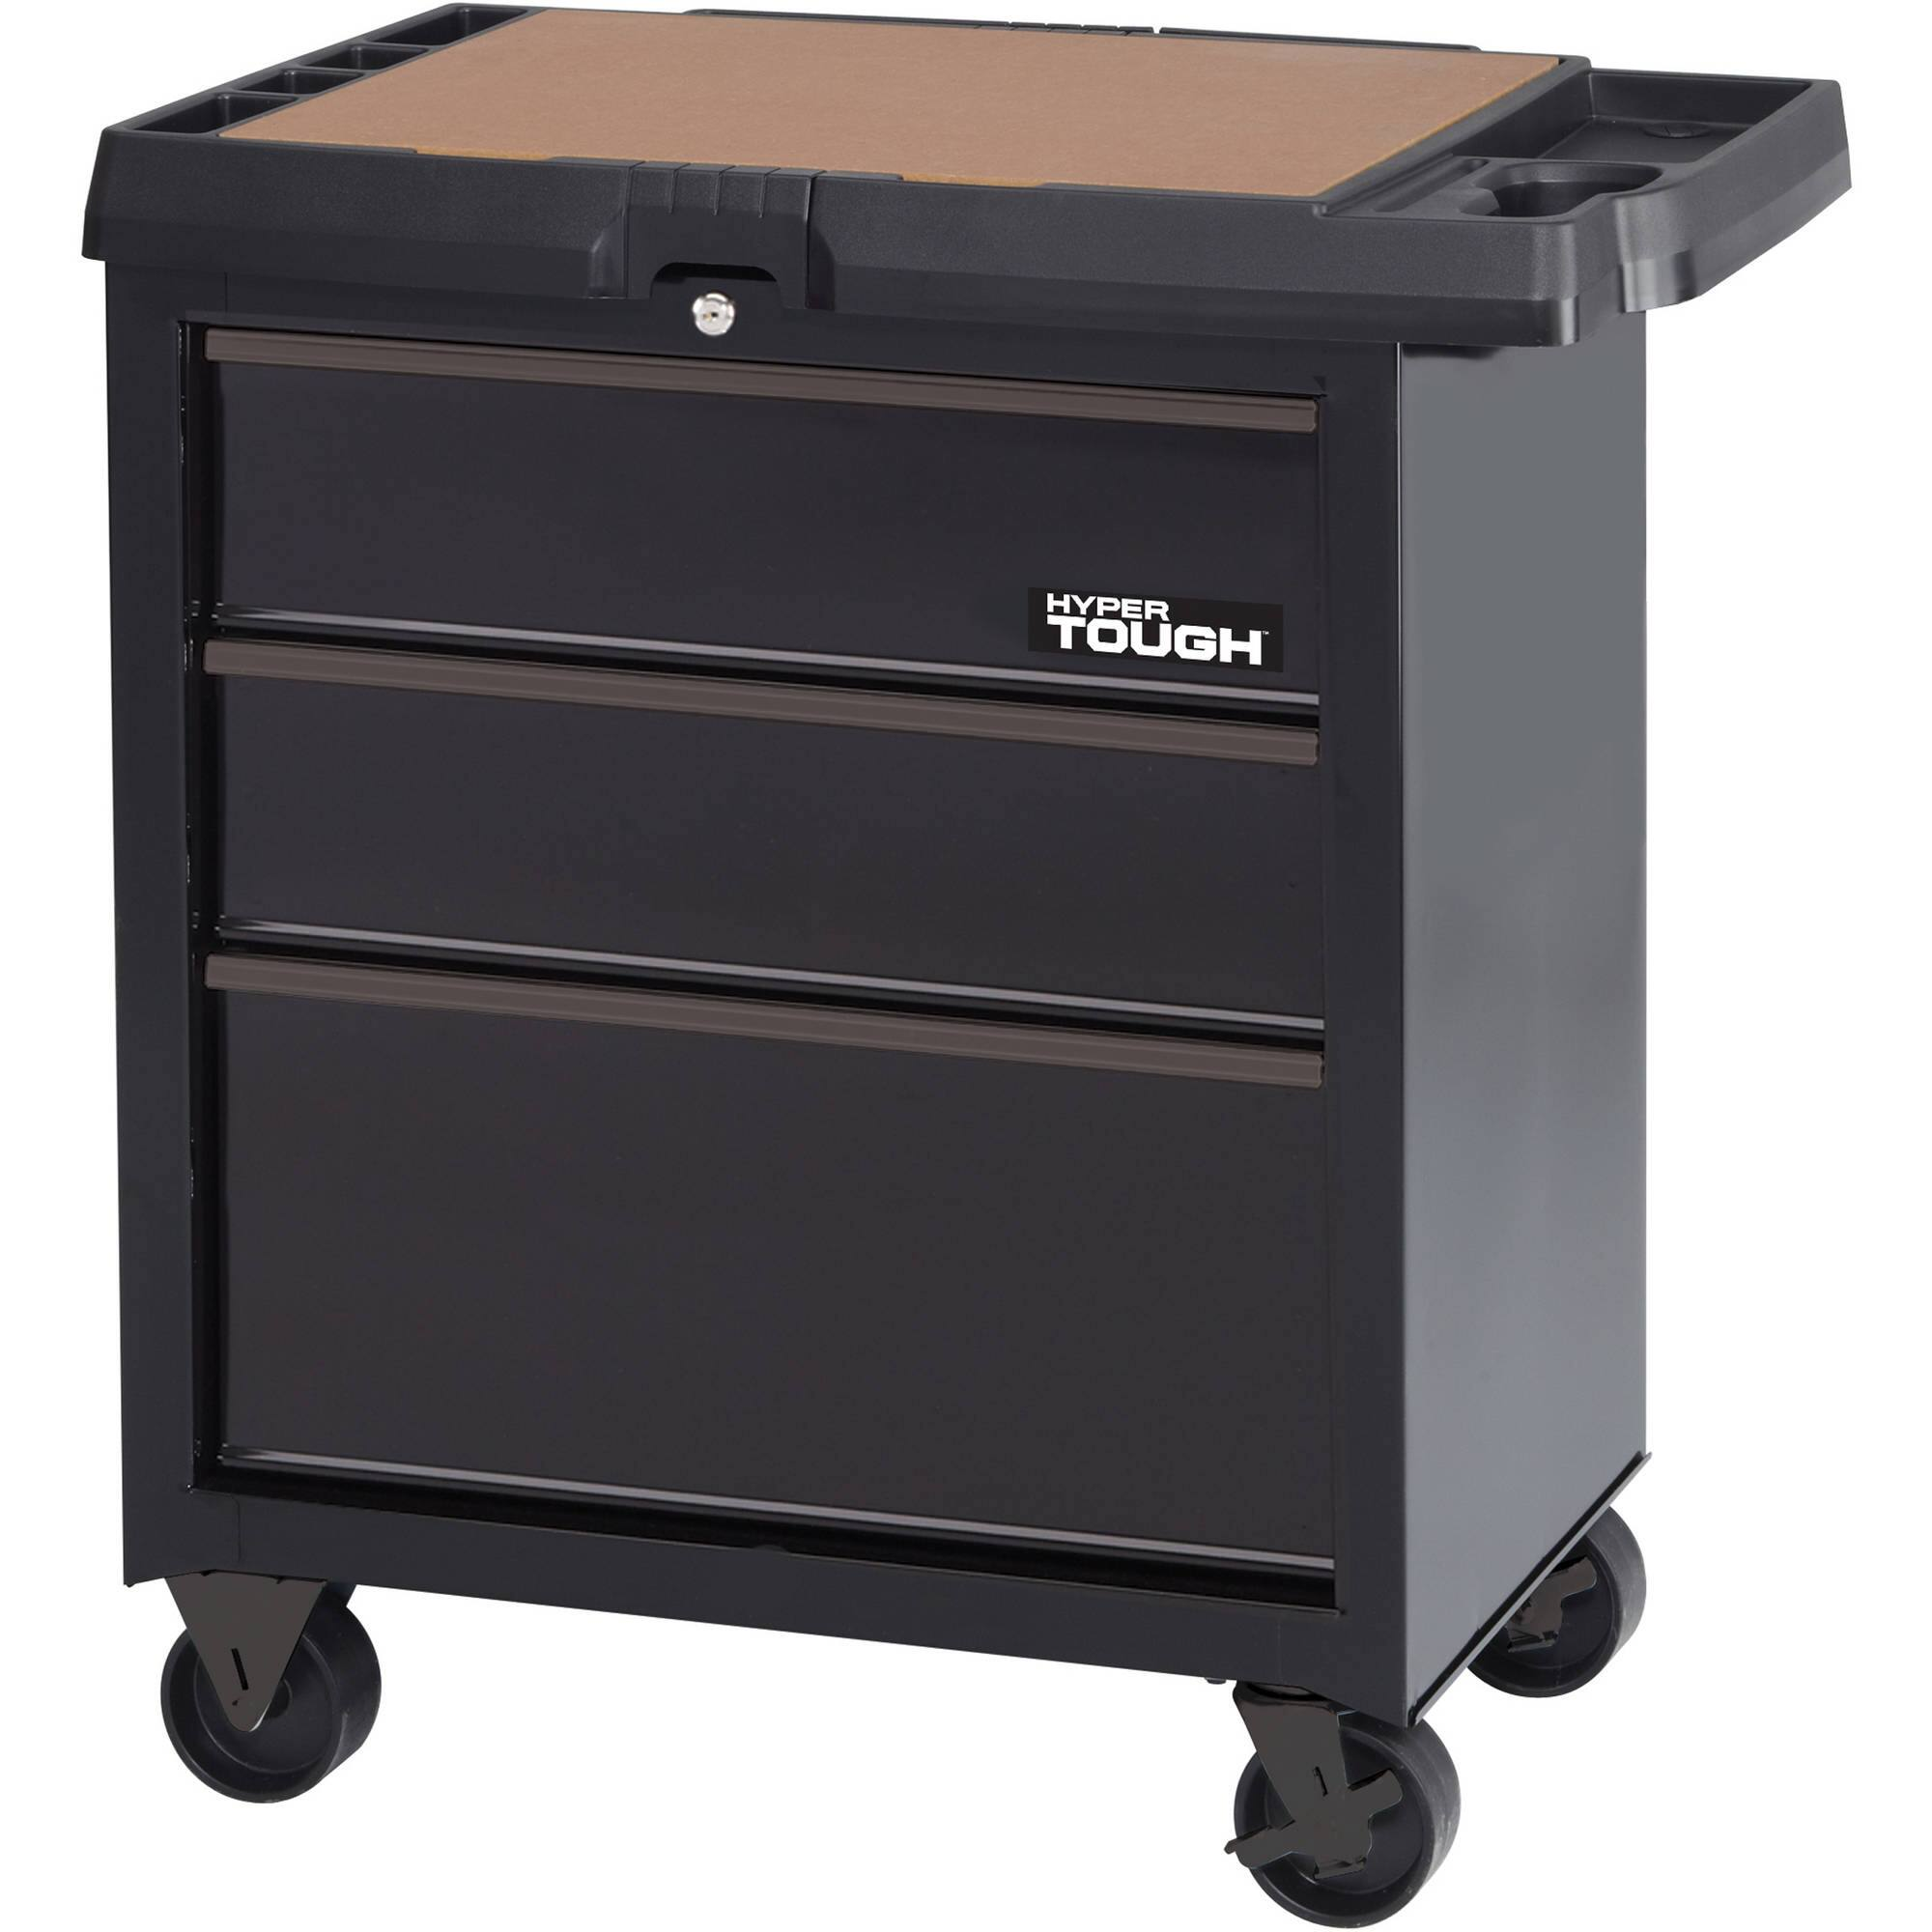 Brilliant Hyper Tough 3 Drawer Project Center Walmart Bm Ymmv 25 Gmtry Best Dining Table And Chair Ideas Images Gmtryco